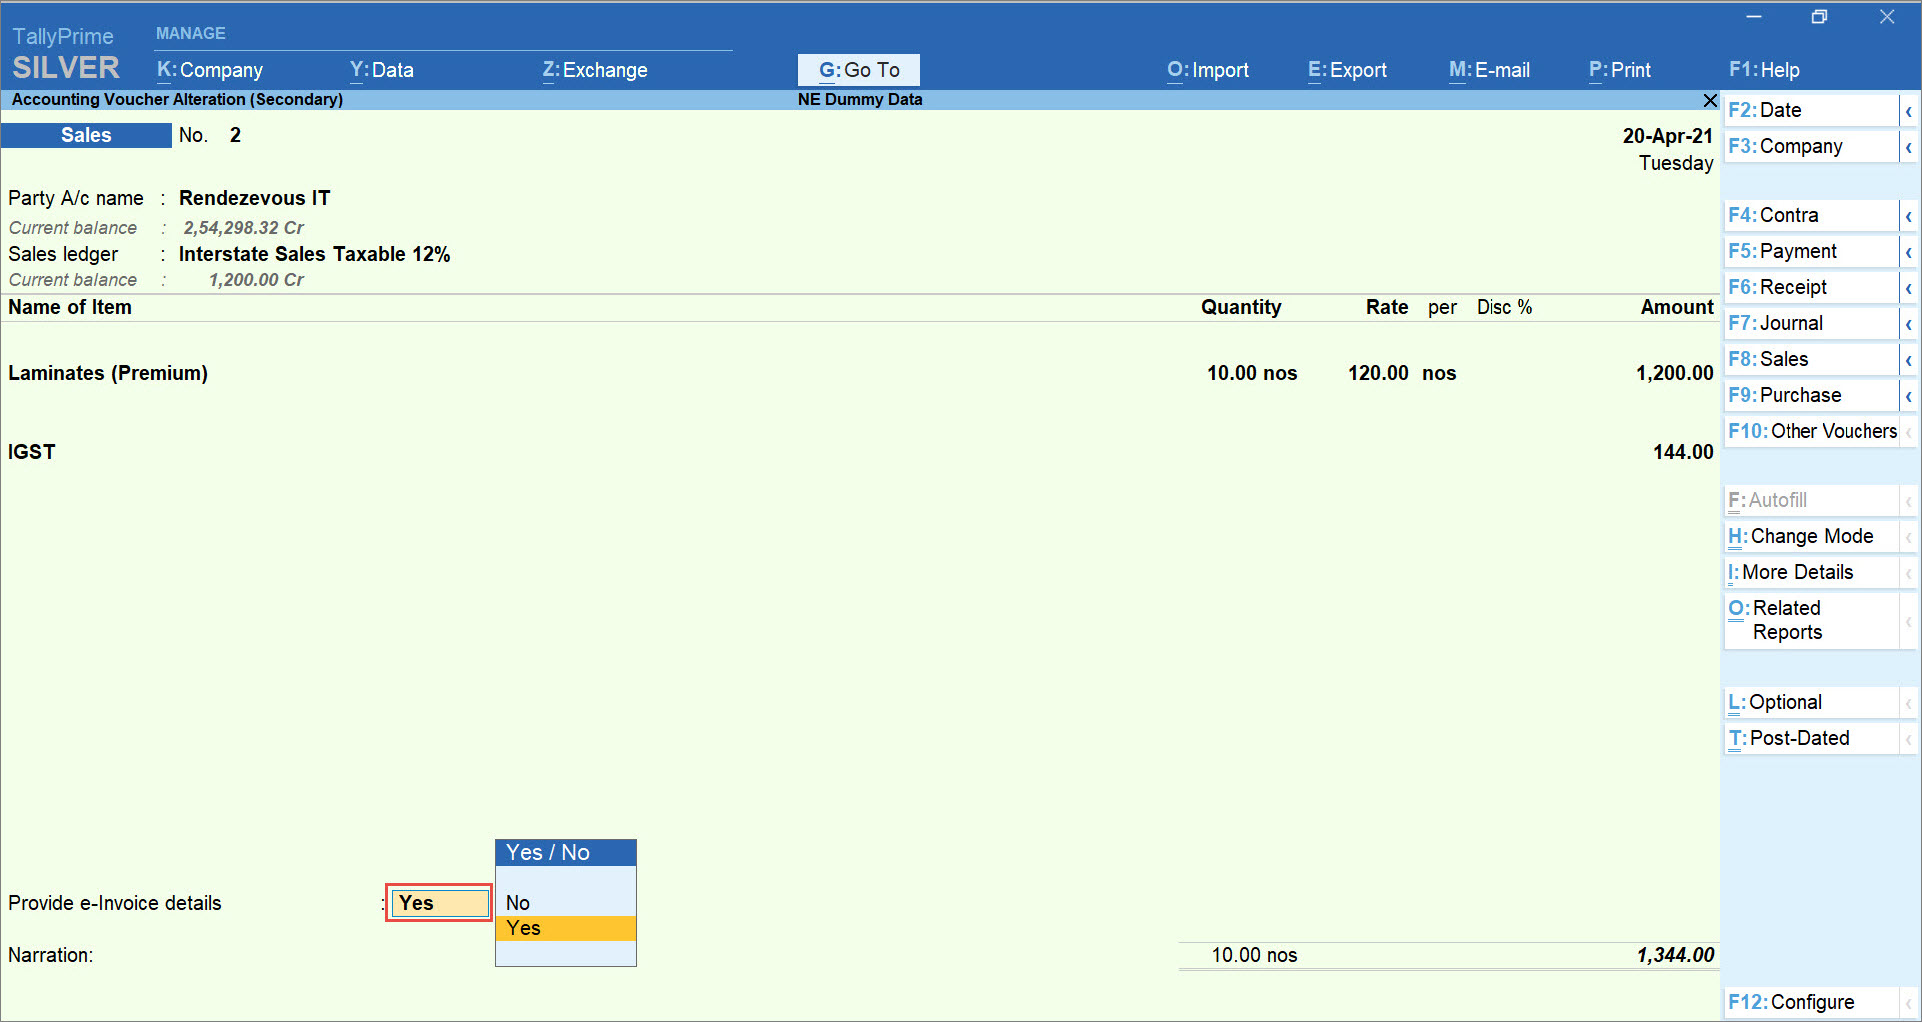 Provide e-Invoice details set to Yes in Sales Transaction in TallyPrime